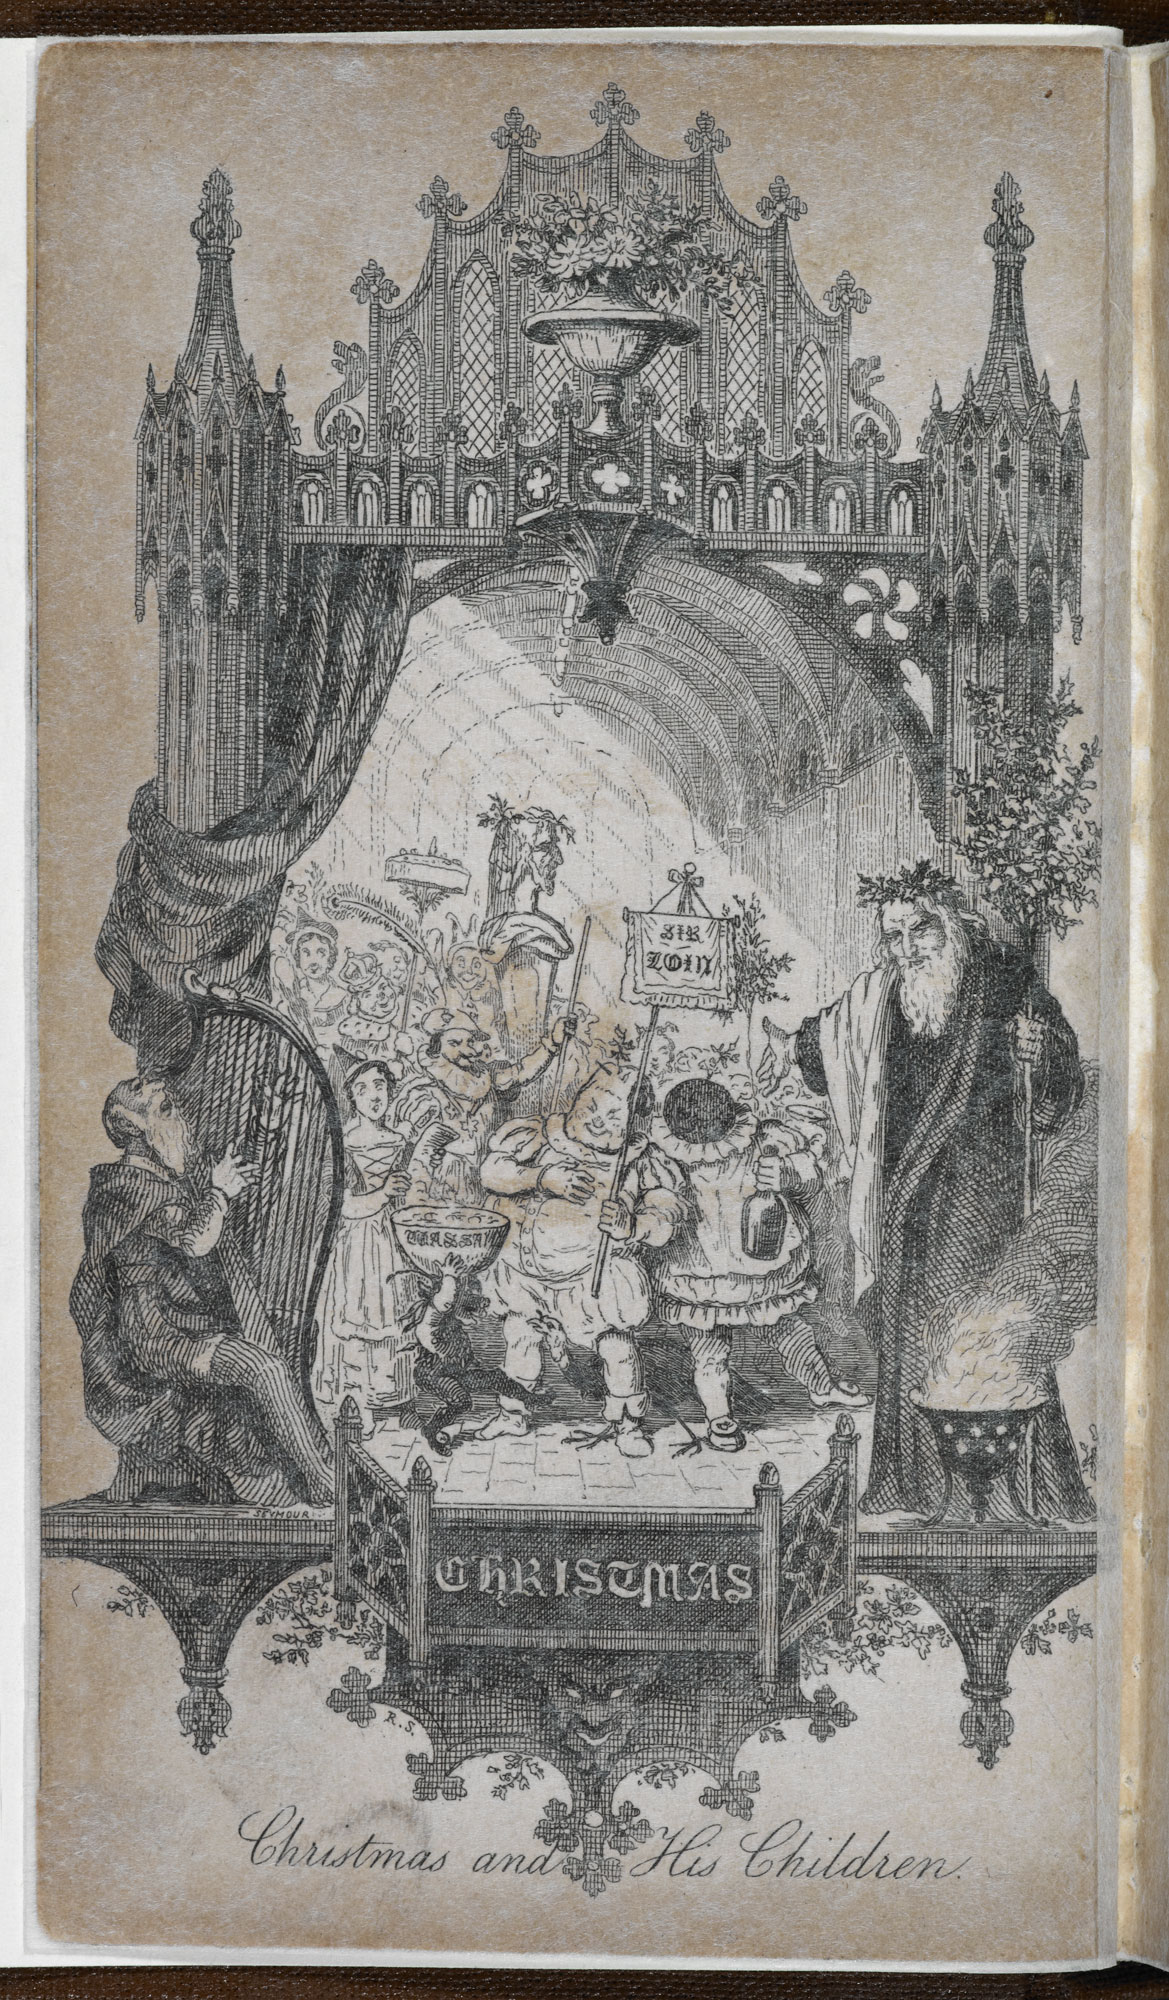 Hervey's The Book of Christmas [page: frontispiece]